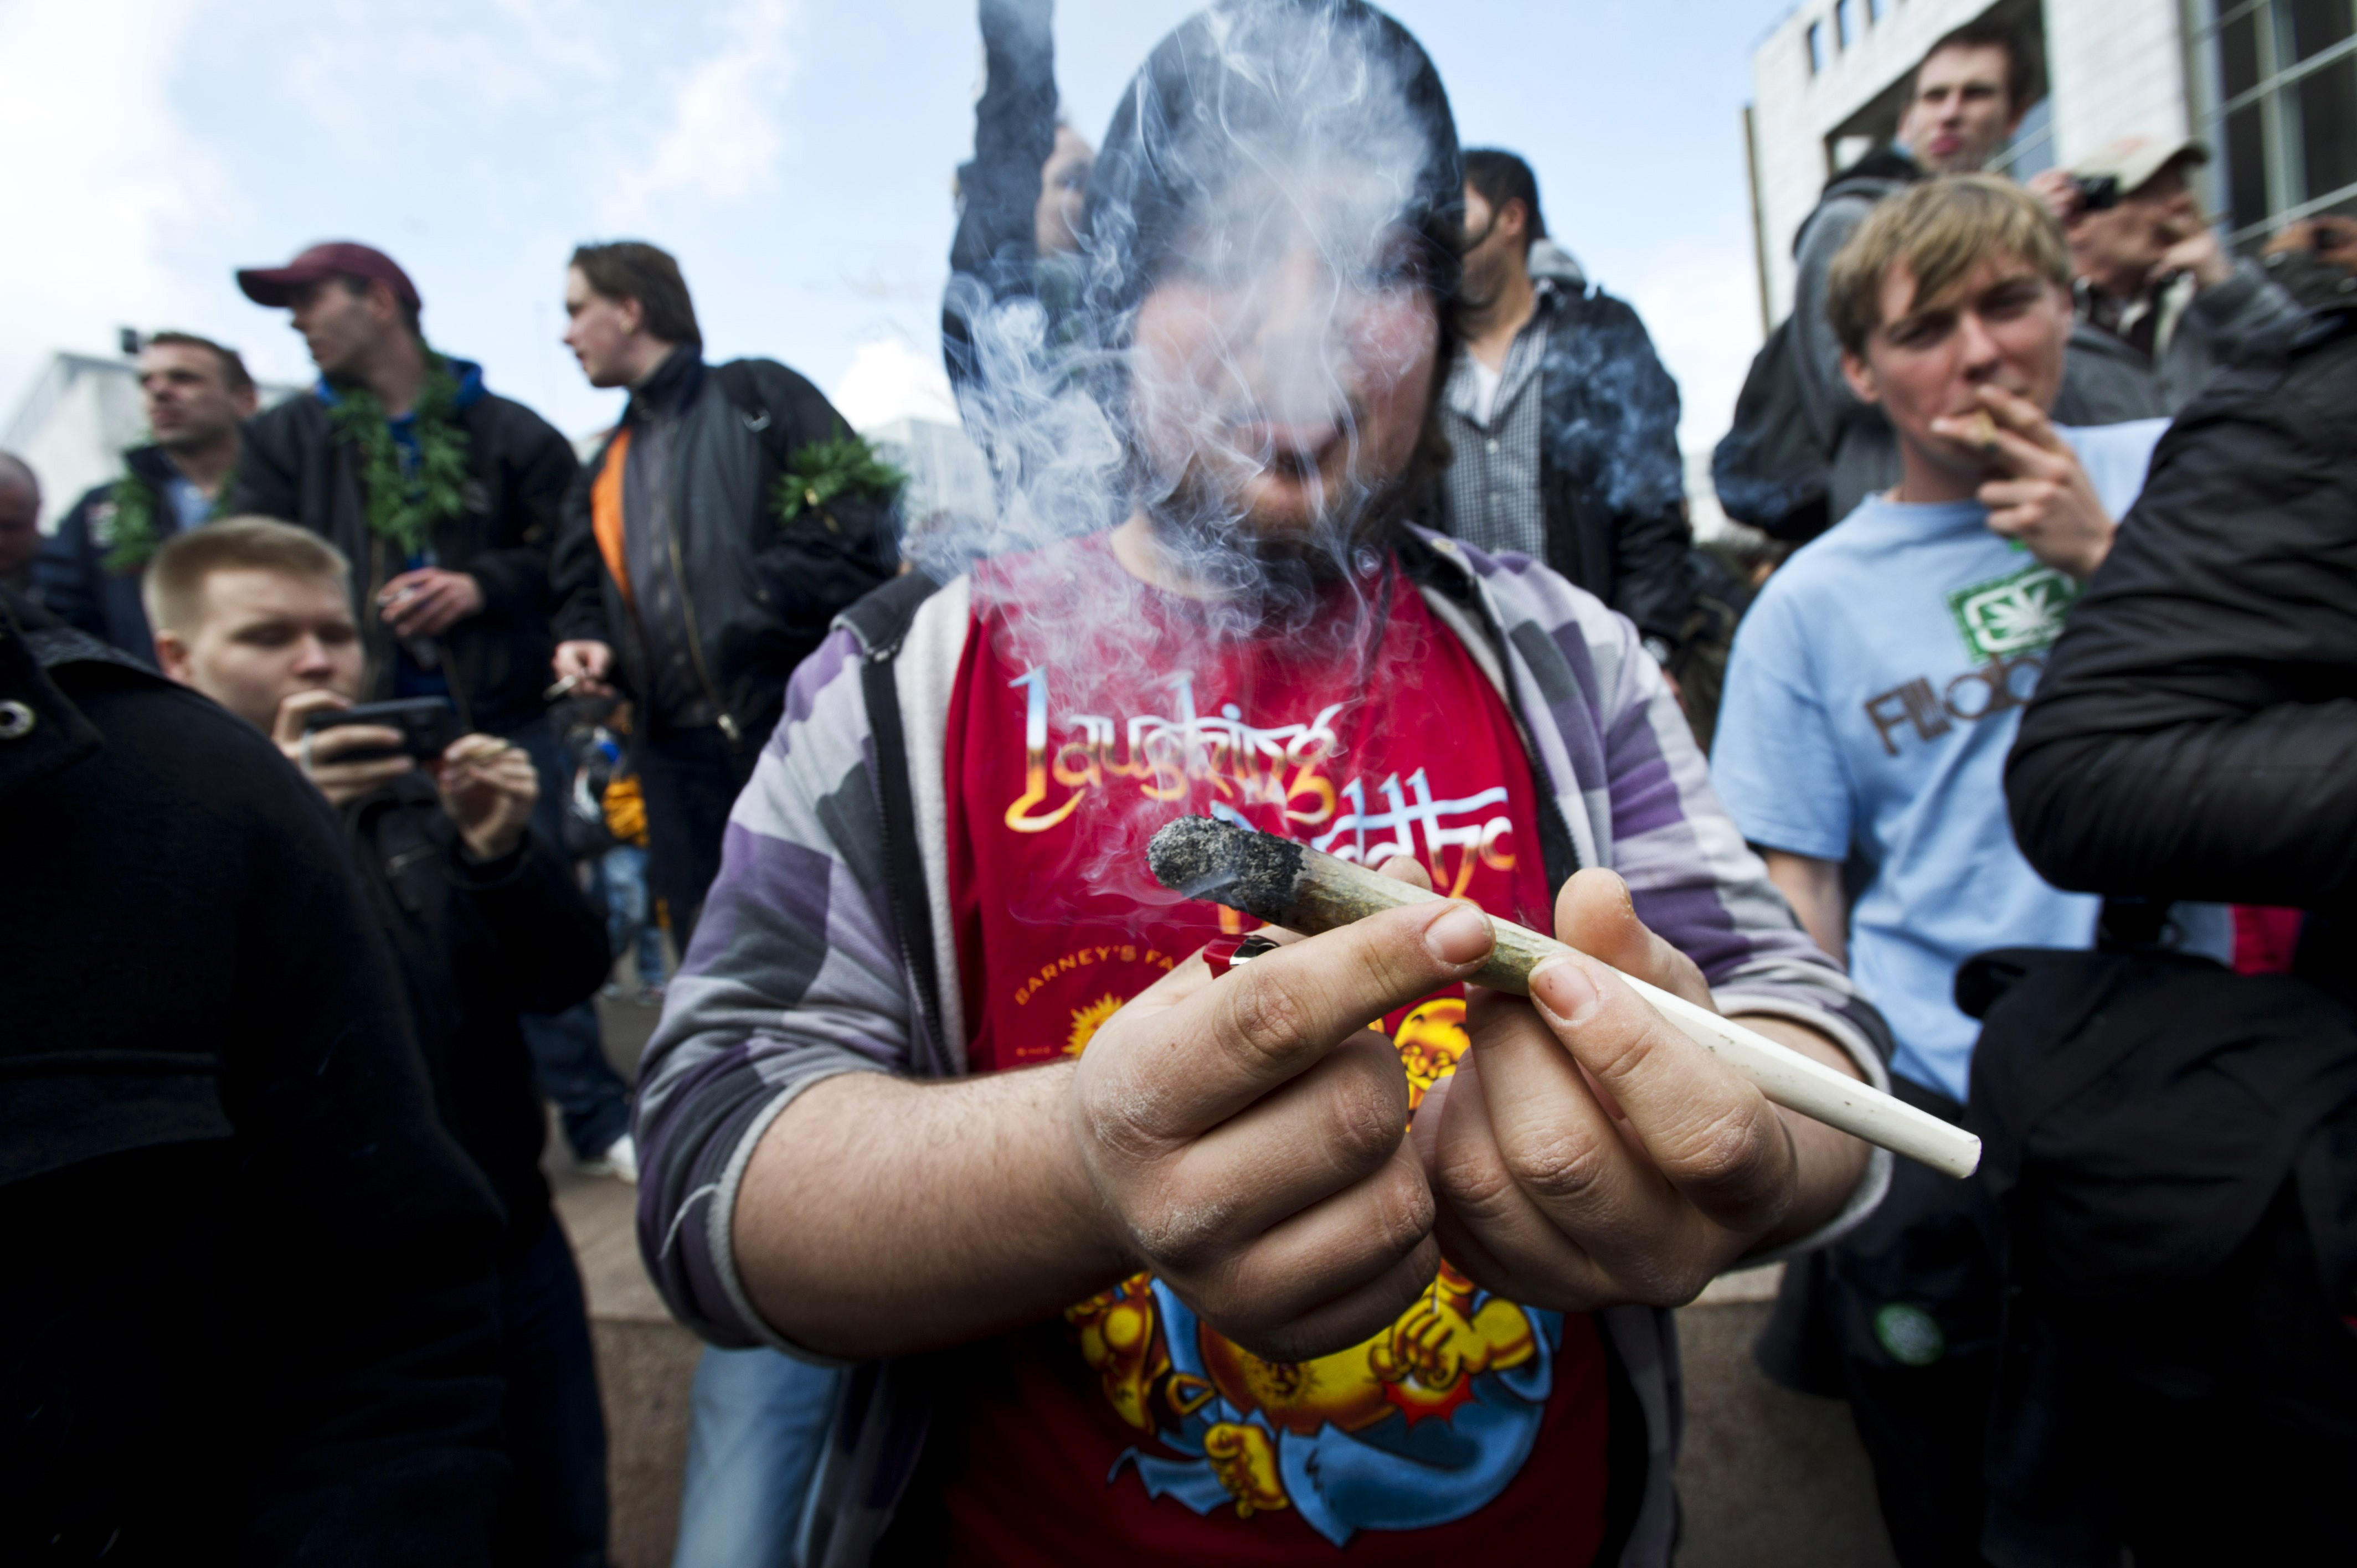 Amsterdam protesters smoke marijuana during a demo